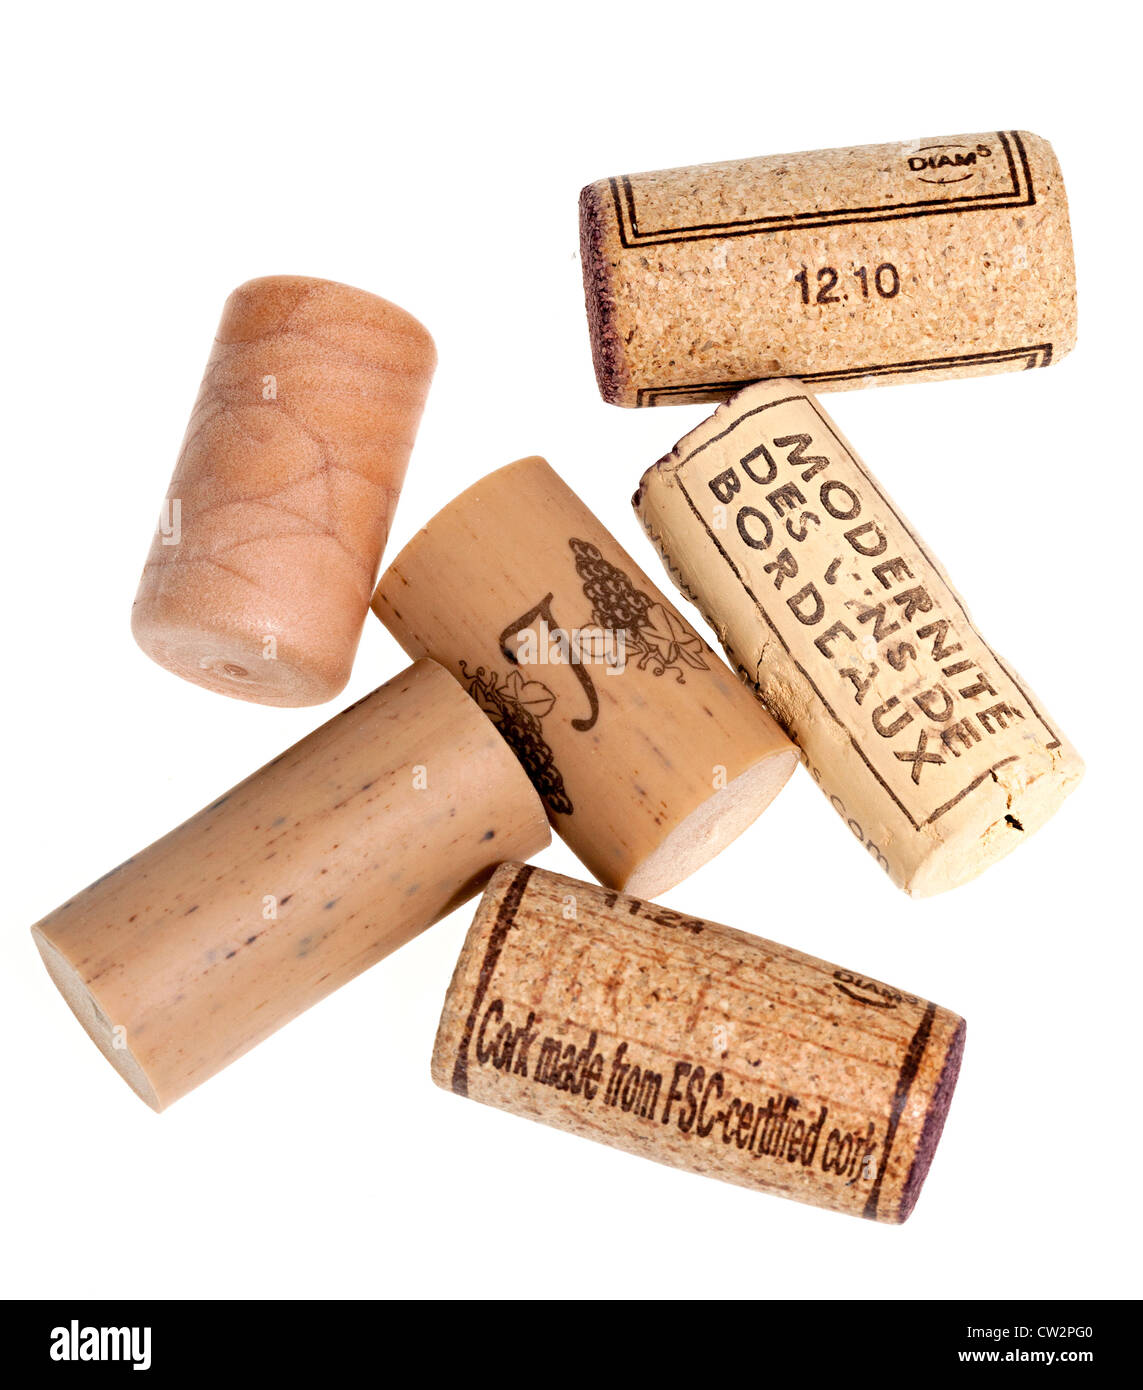 Natural and artificial corks with one marked made from FSC certified cork - Stock Image